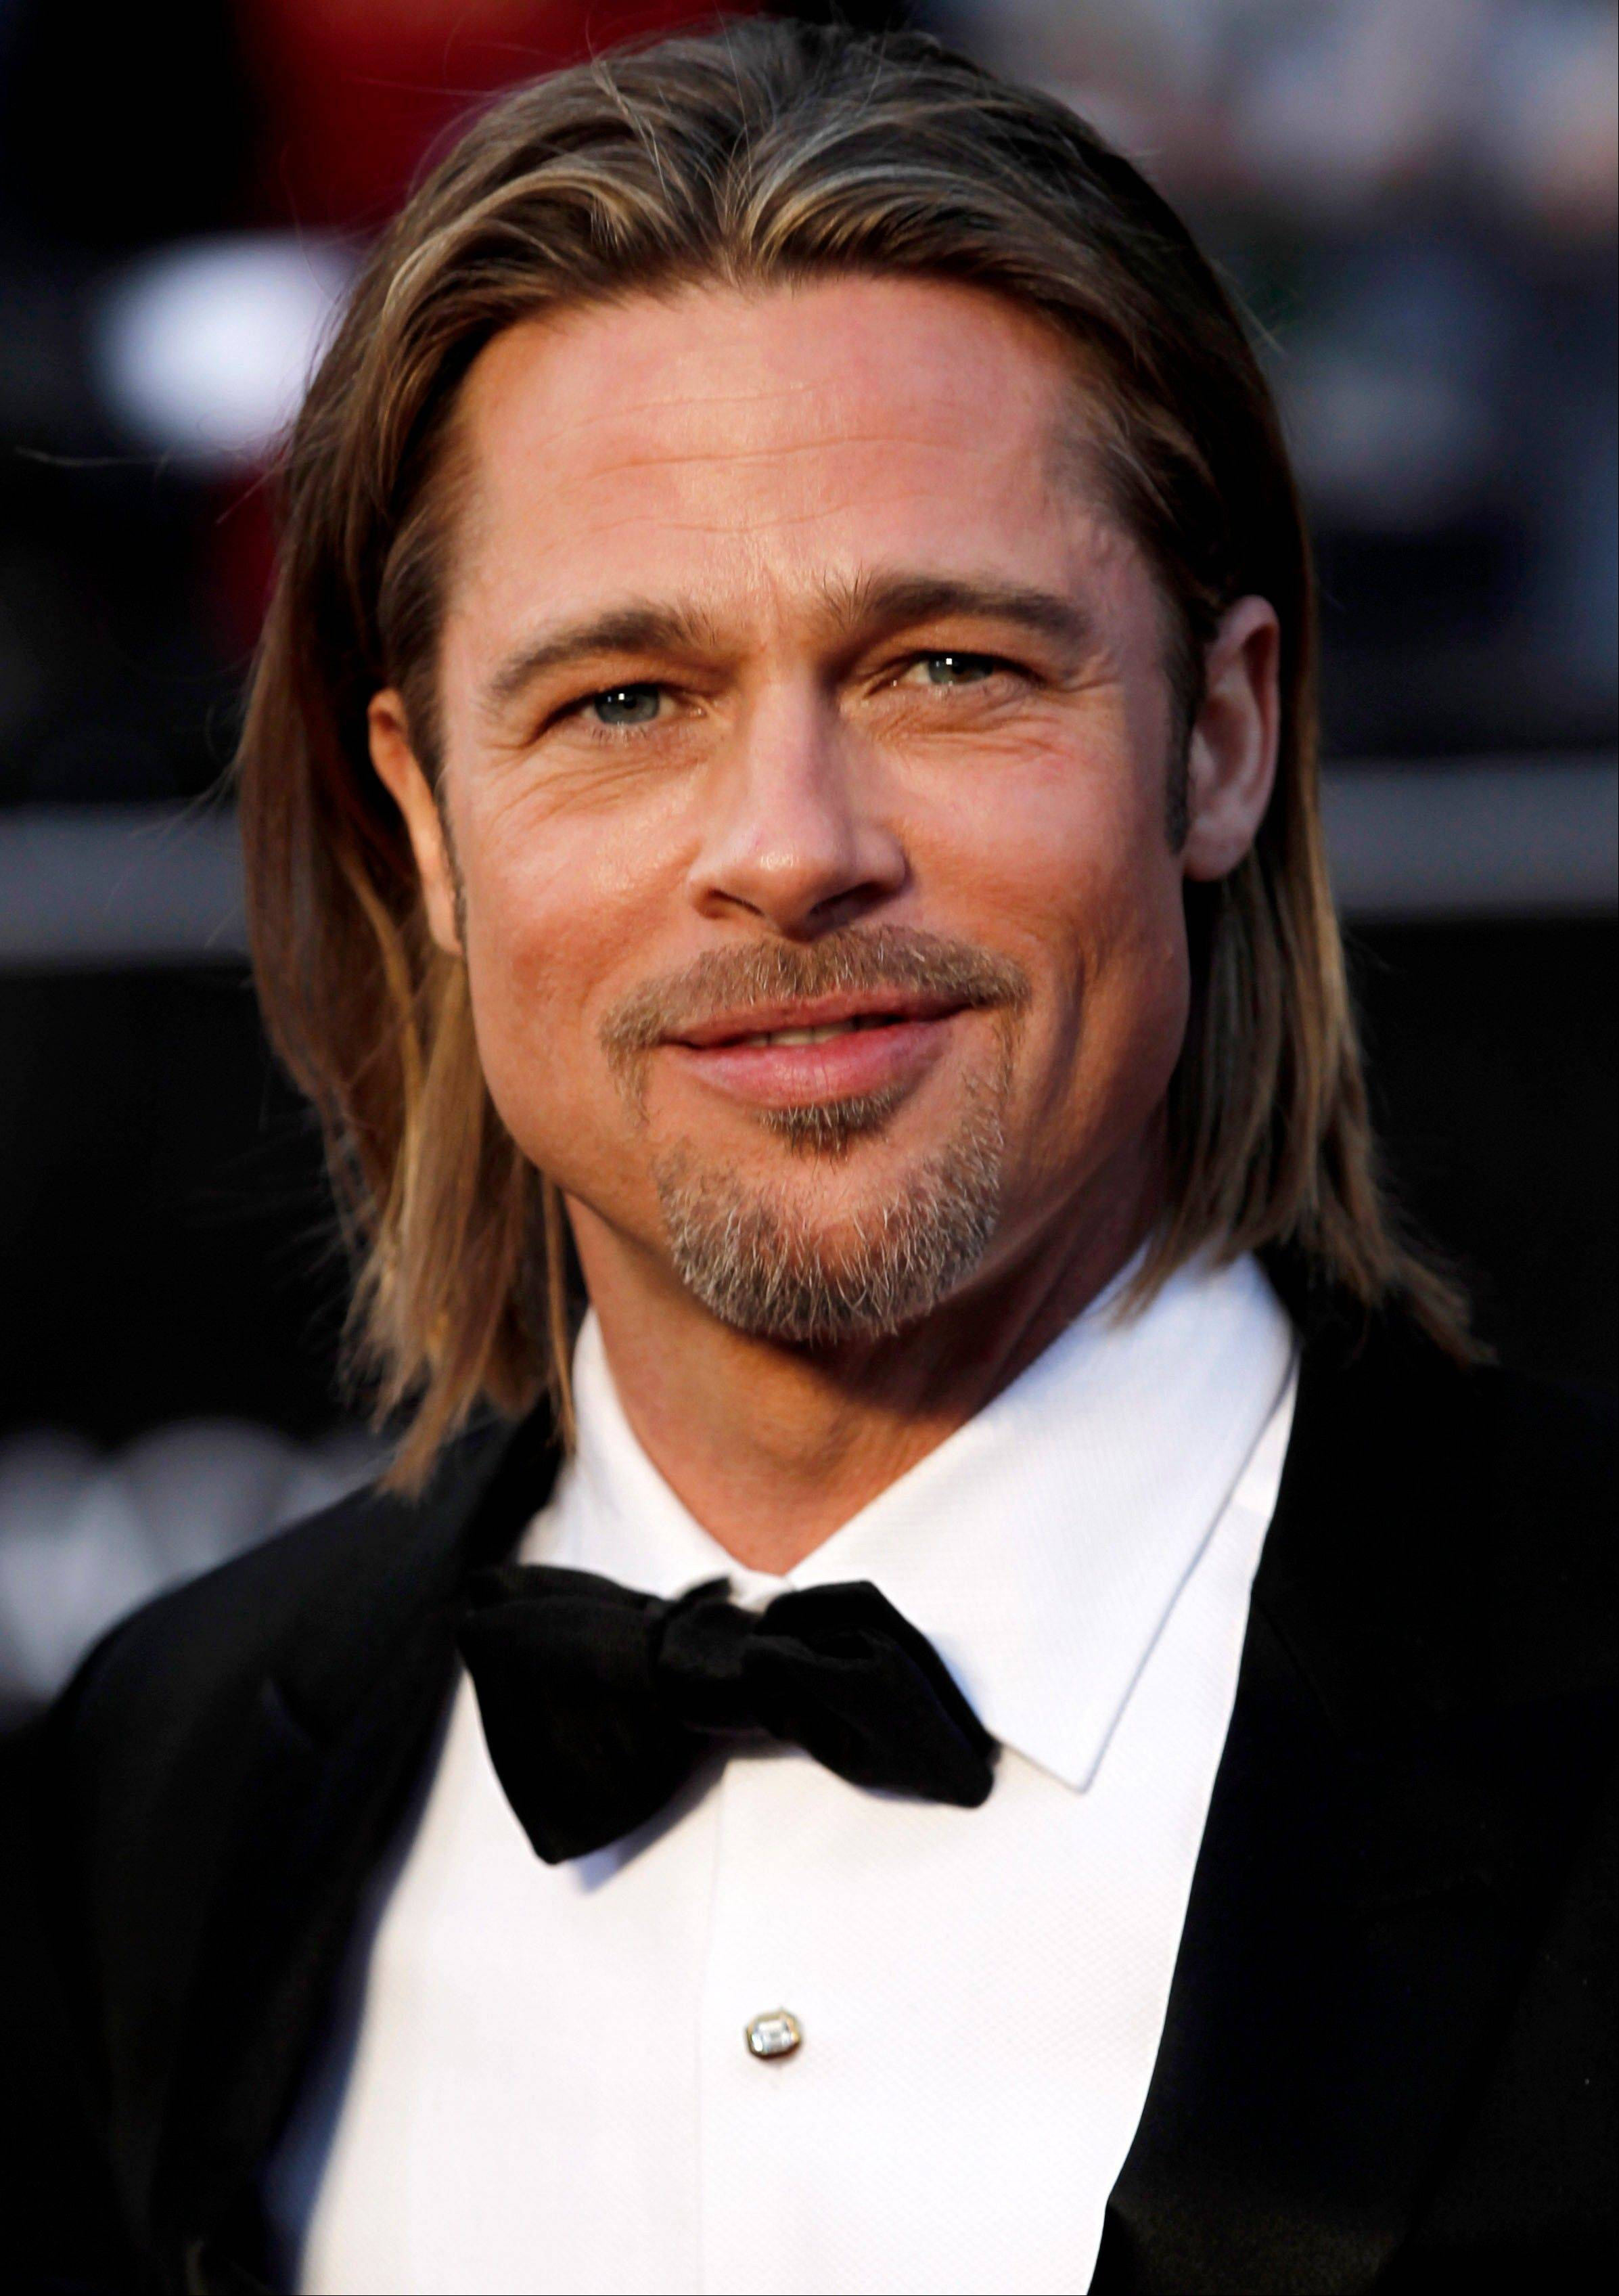 Academy Award nominee Brad Pitt arrives at the Oscars.